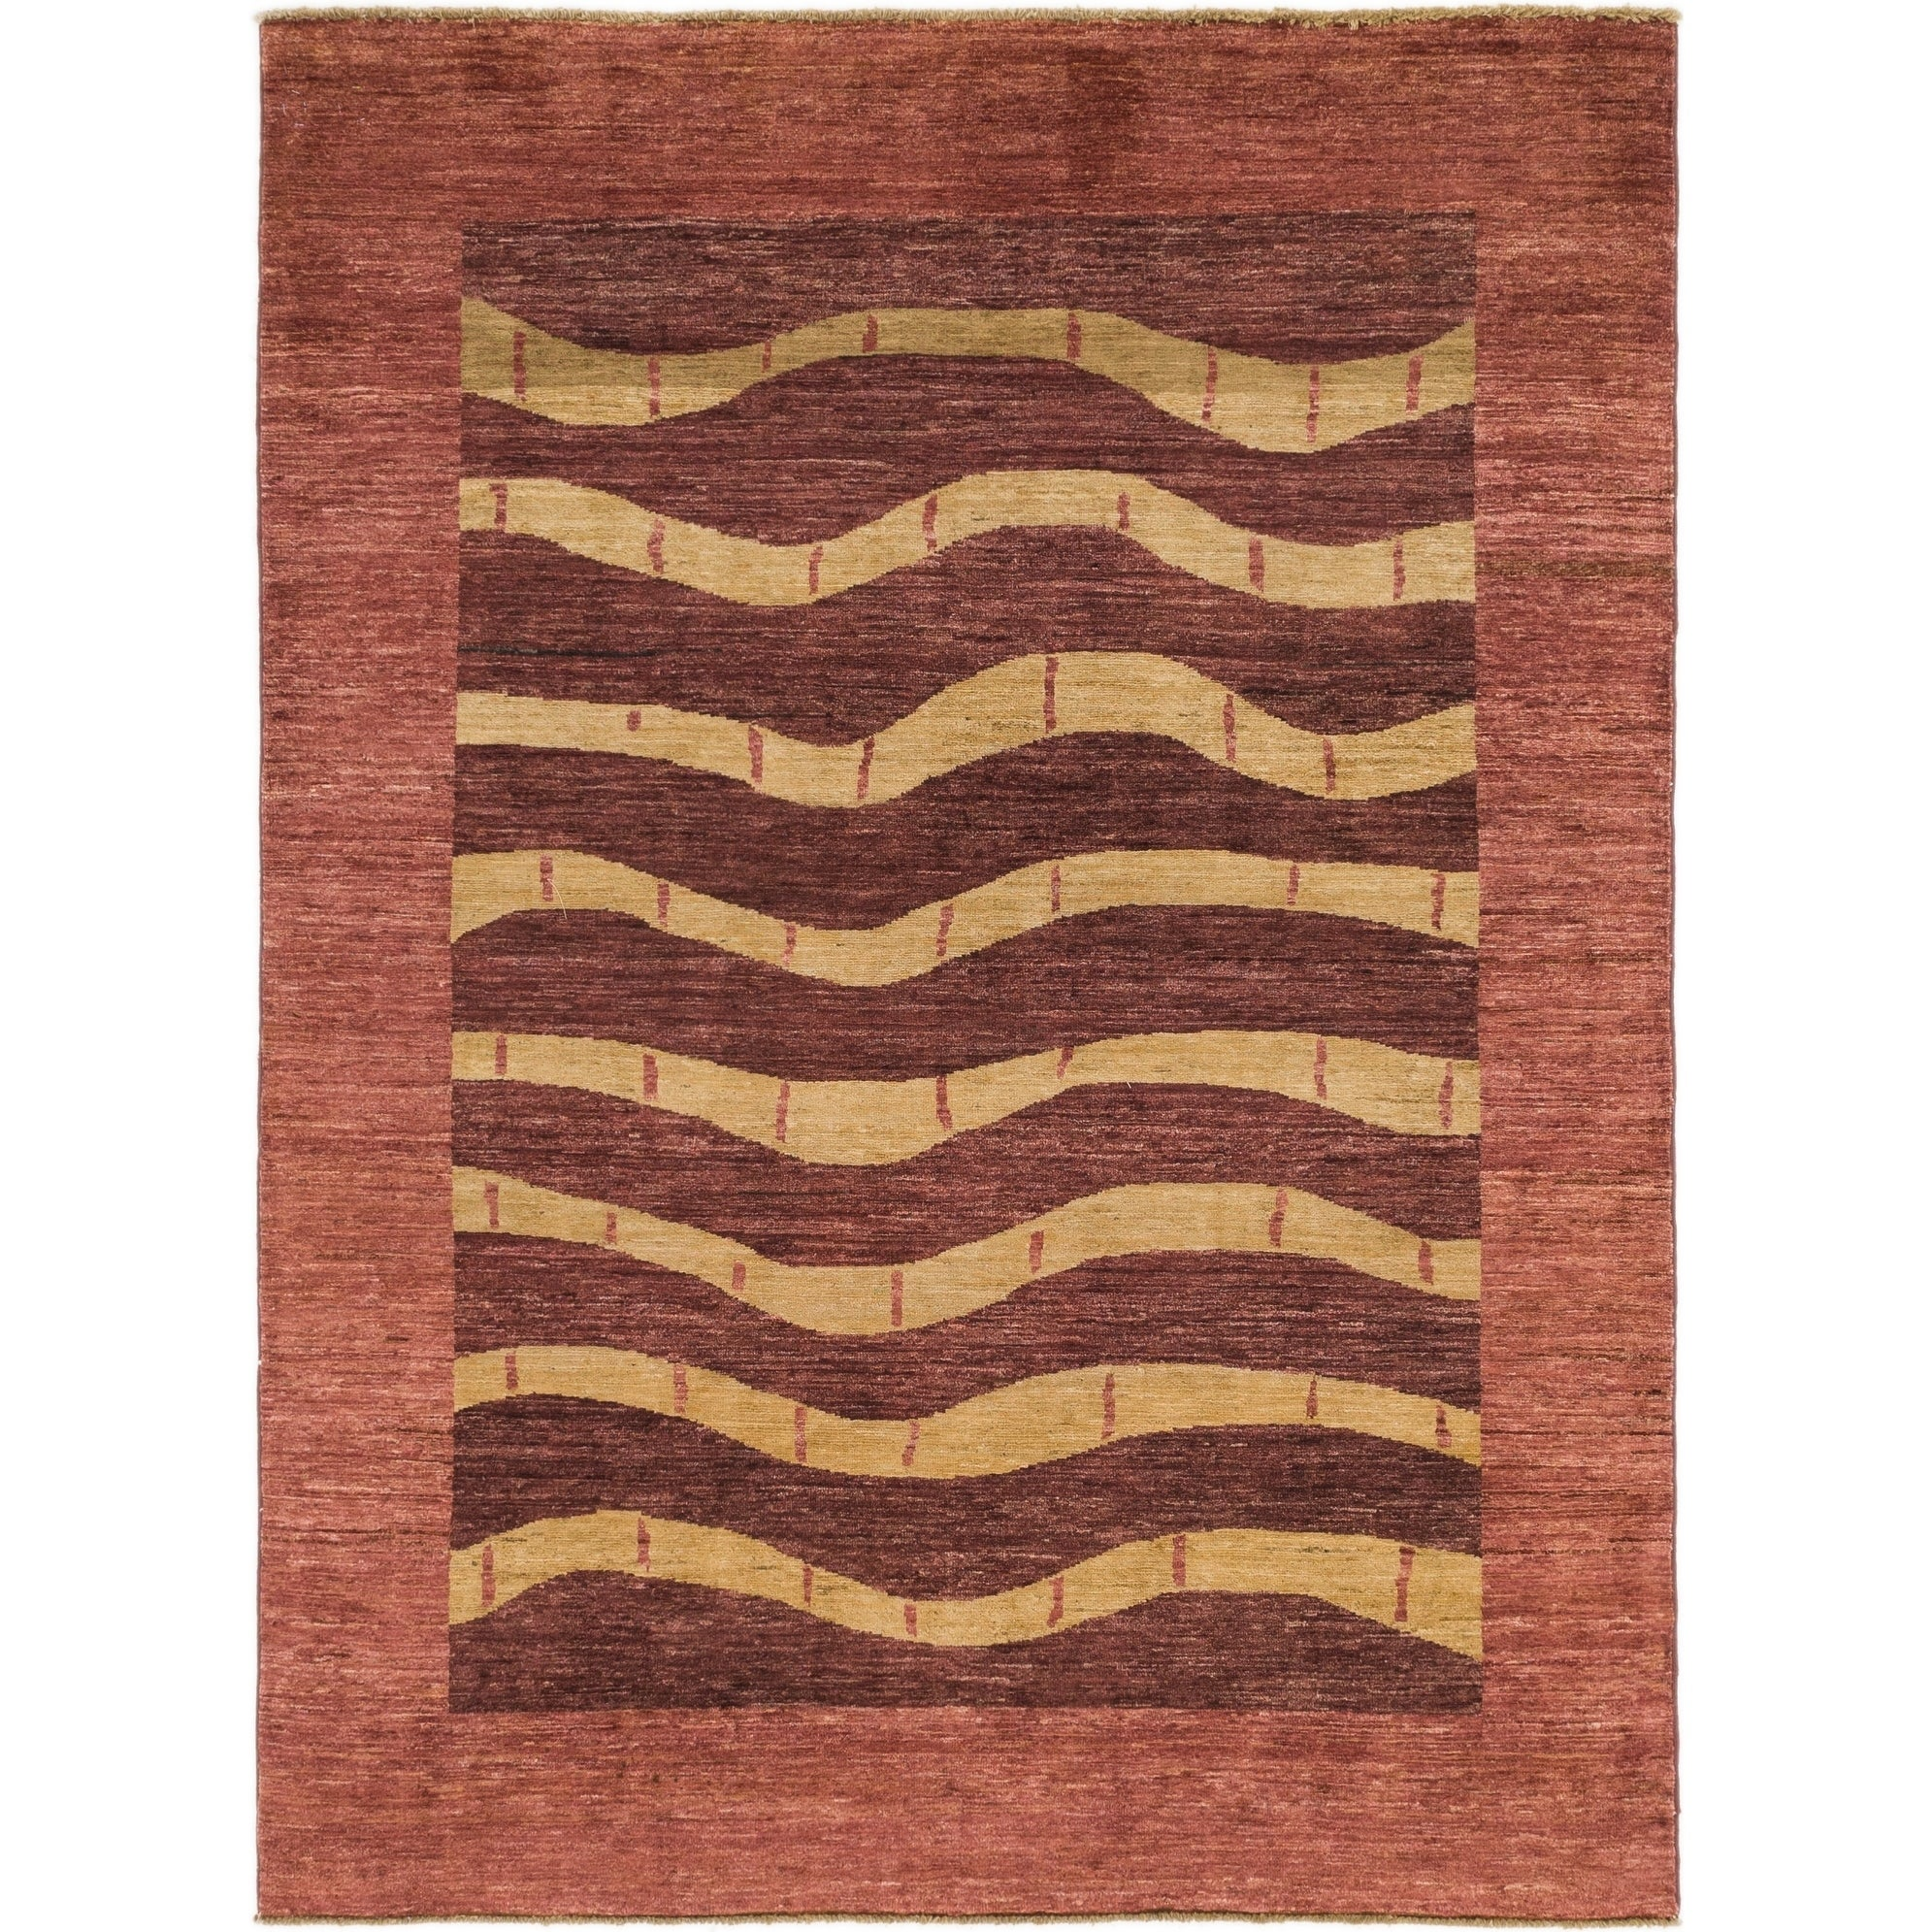 Hand Knotted Kashkuli Gabbeh Wool Area Rug - 5 10 x 7 10 (Red - 5 10 x 7 10)